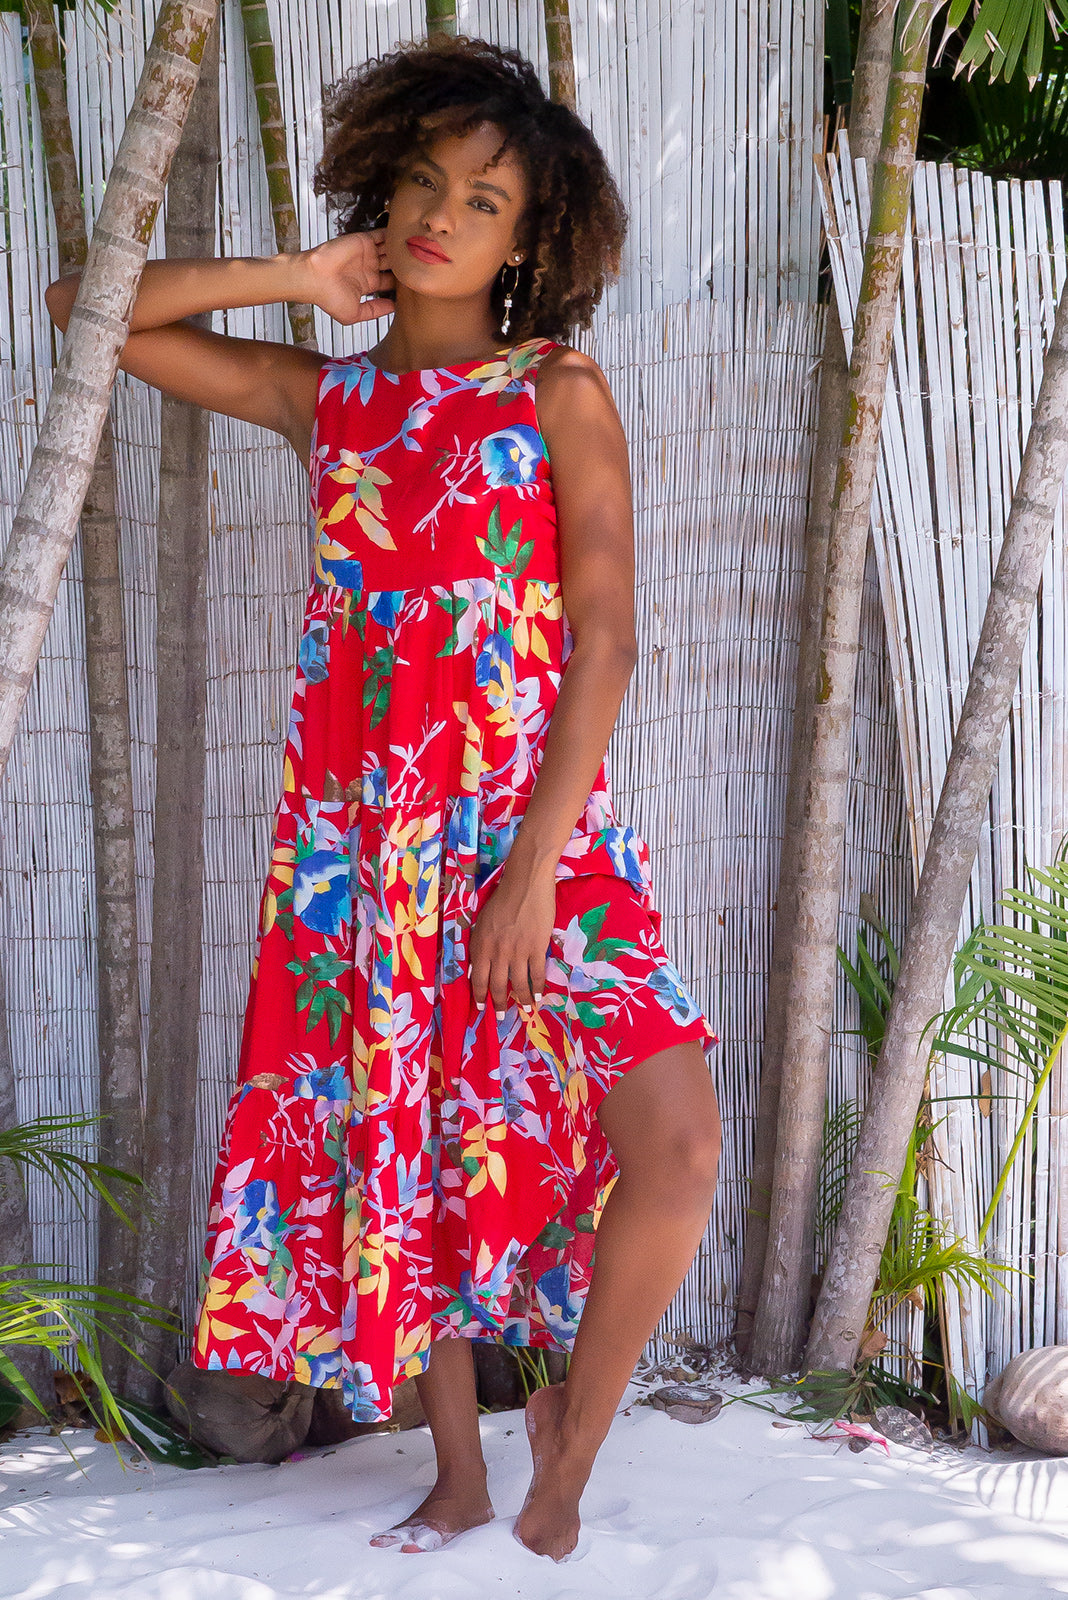 Goldie Red Reflections Dress, bohemian summer style, 100% cotton, high scooped neckline, sleeveless, three tiered skirt, side pockets, bright red base with large yellow, blue, green and white floral and palm print.